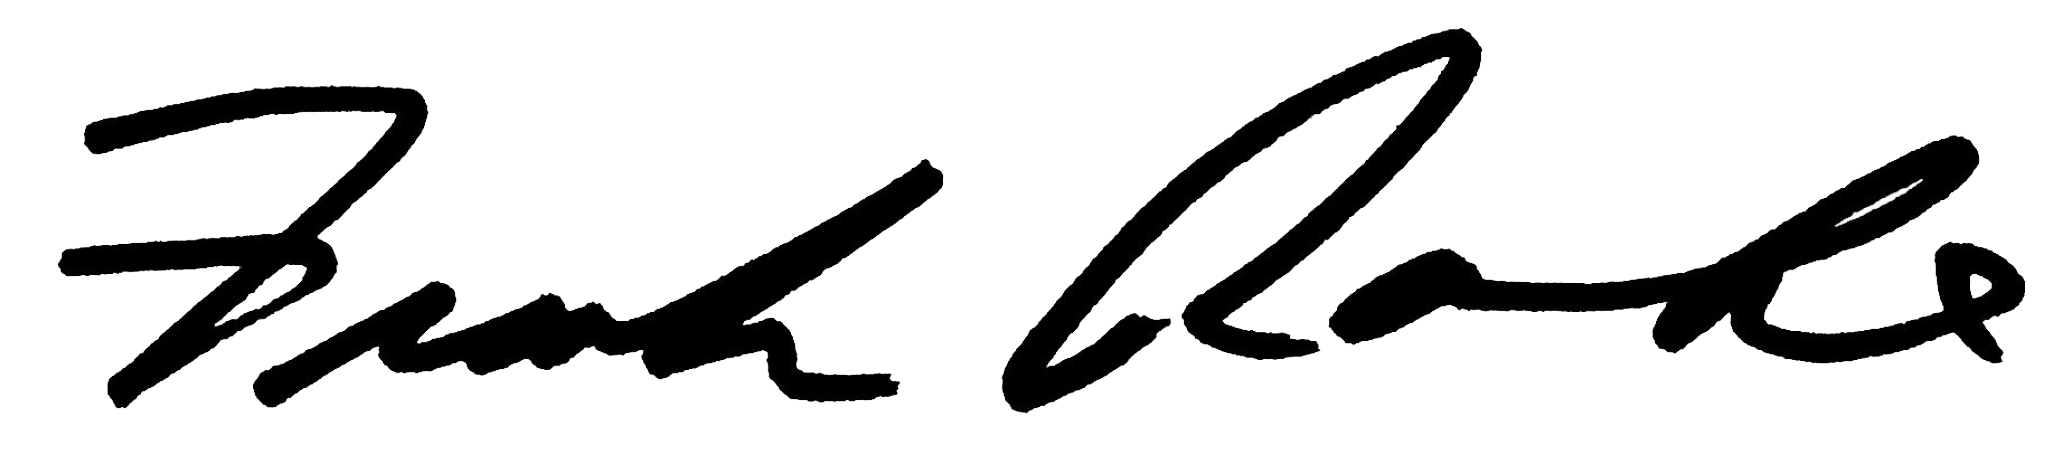 Roche_Electronic_Signature.png